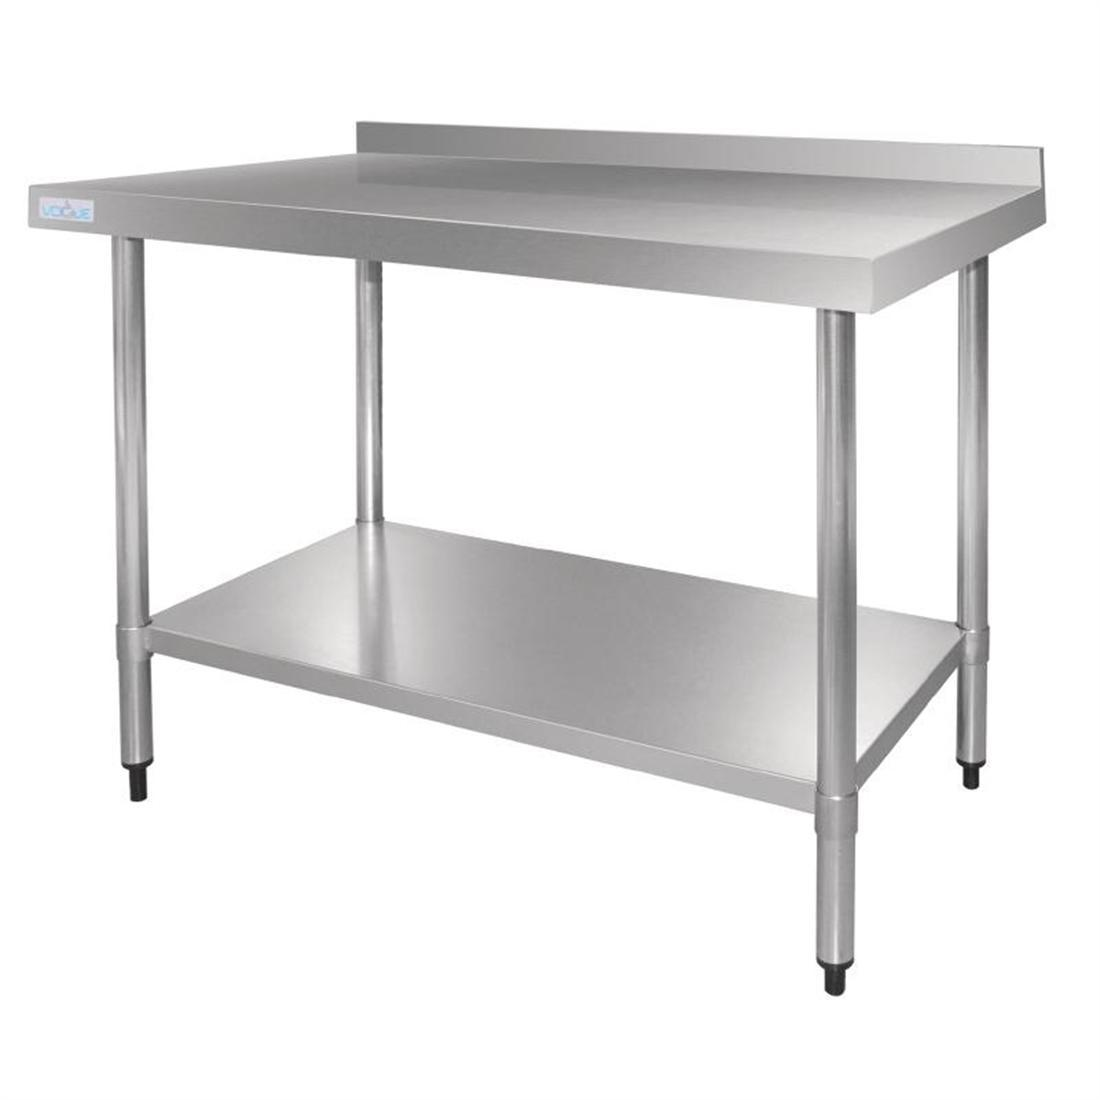 Vogue Stainless Steel Table with Upstand 1200mm - Each - GJ507